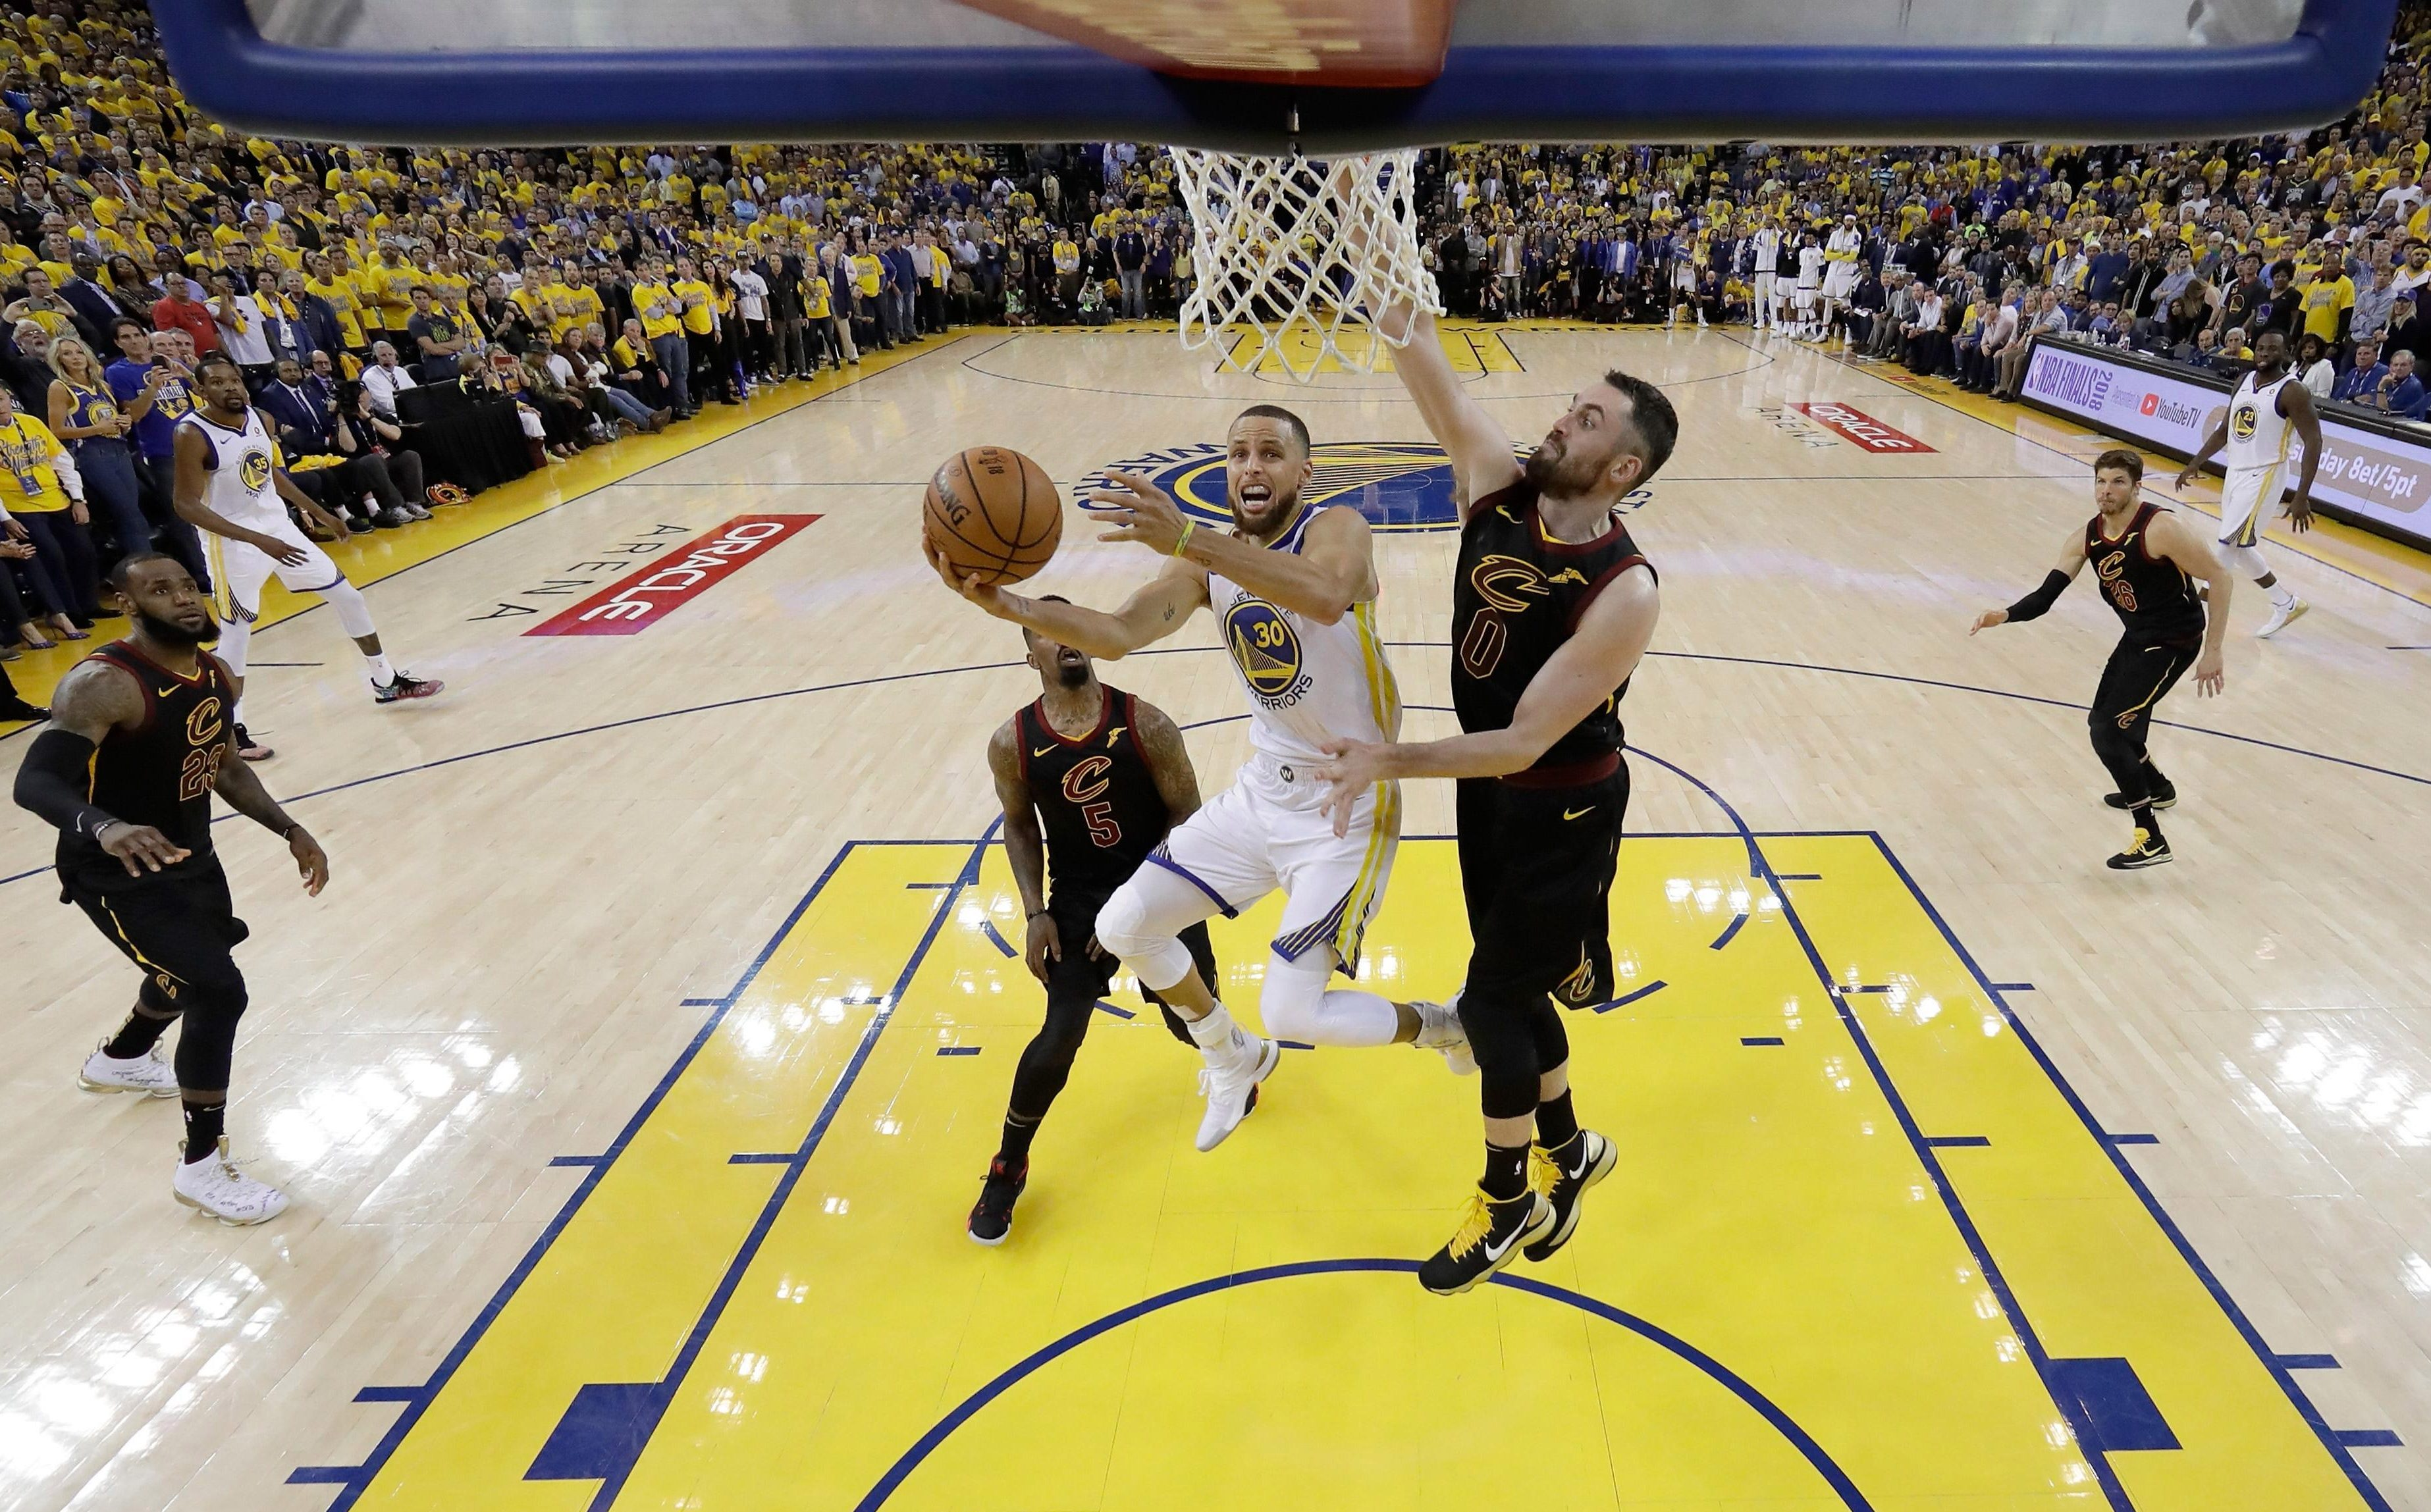 Stephen Curry led the Warriors with 29 points